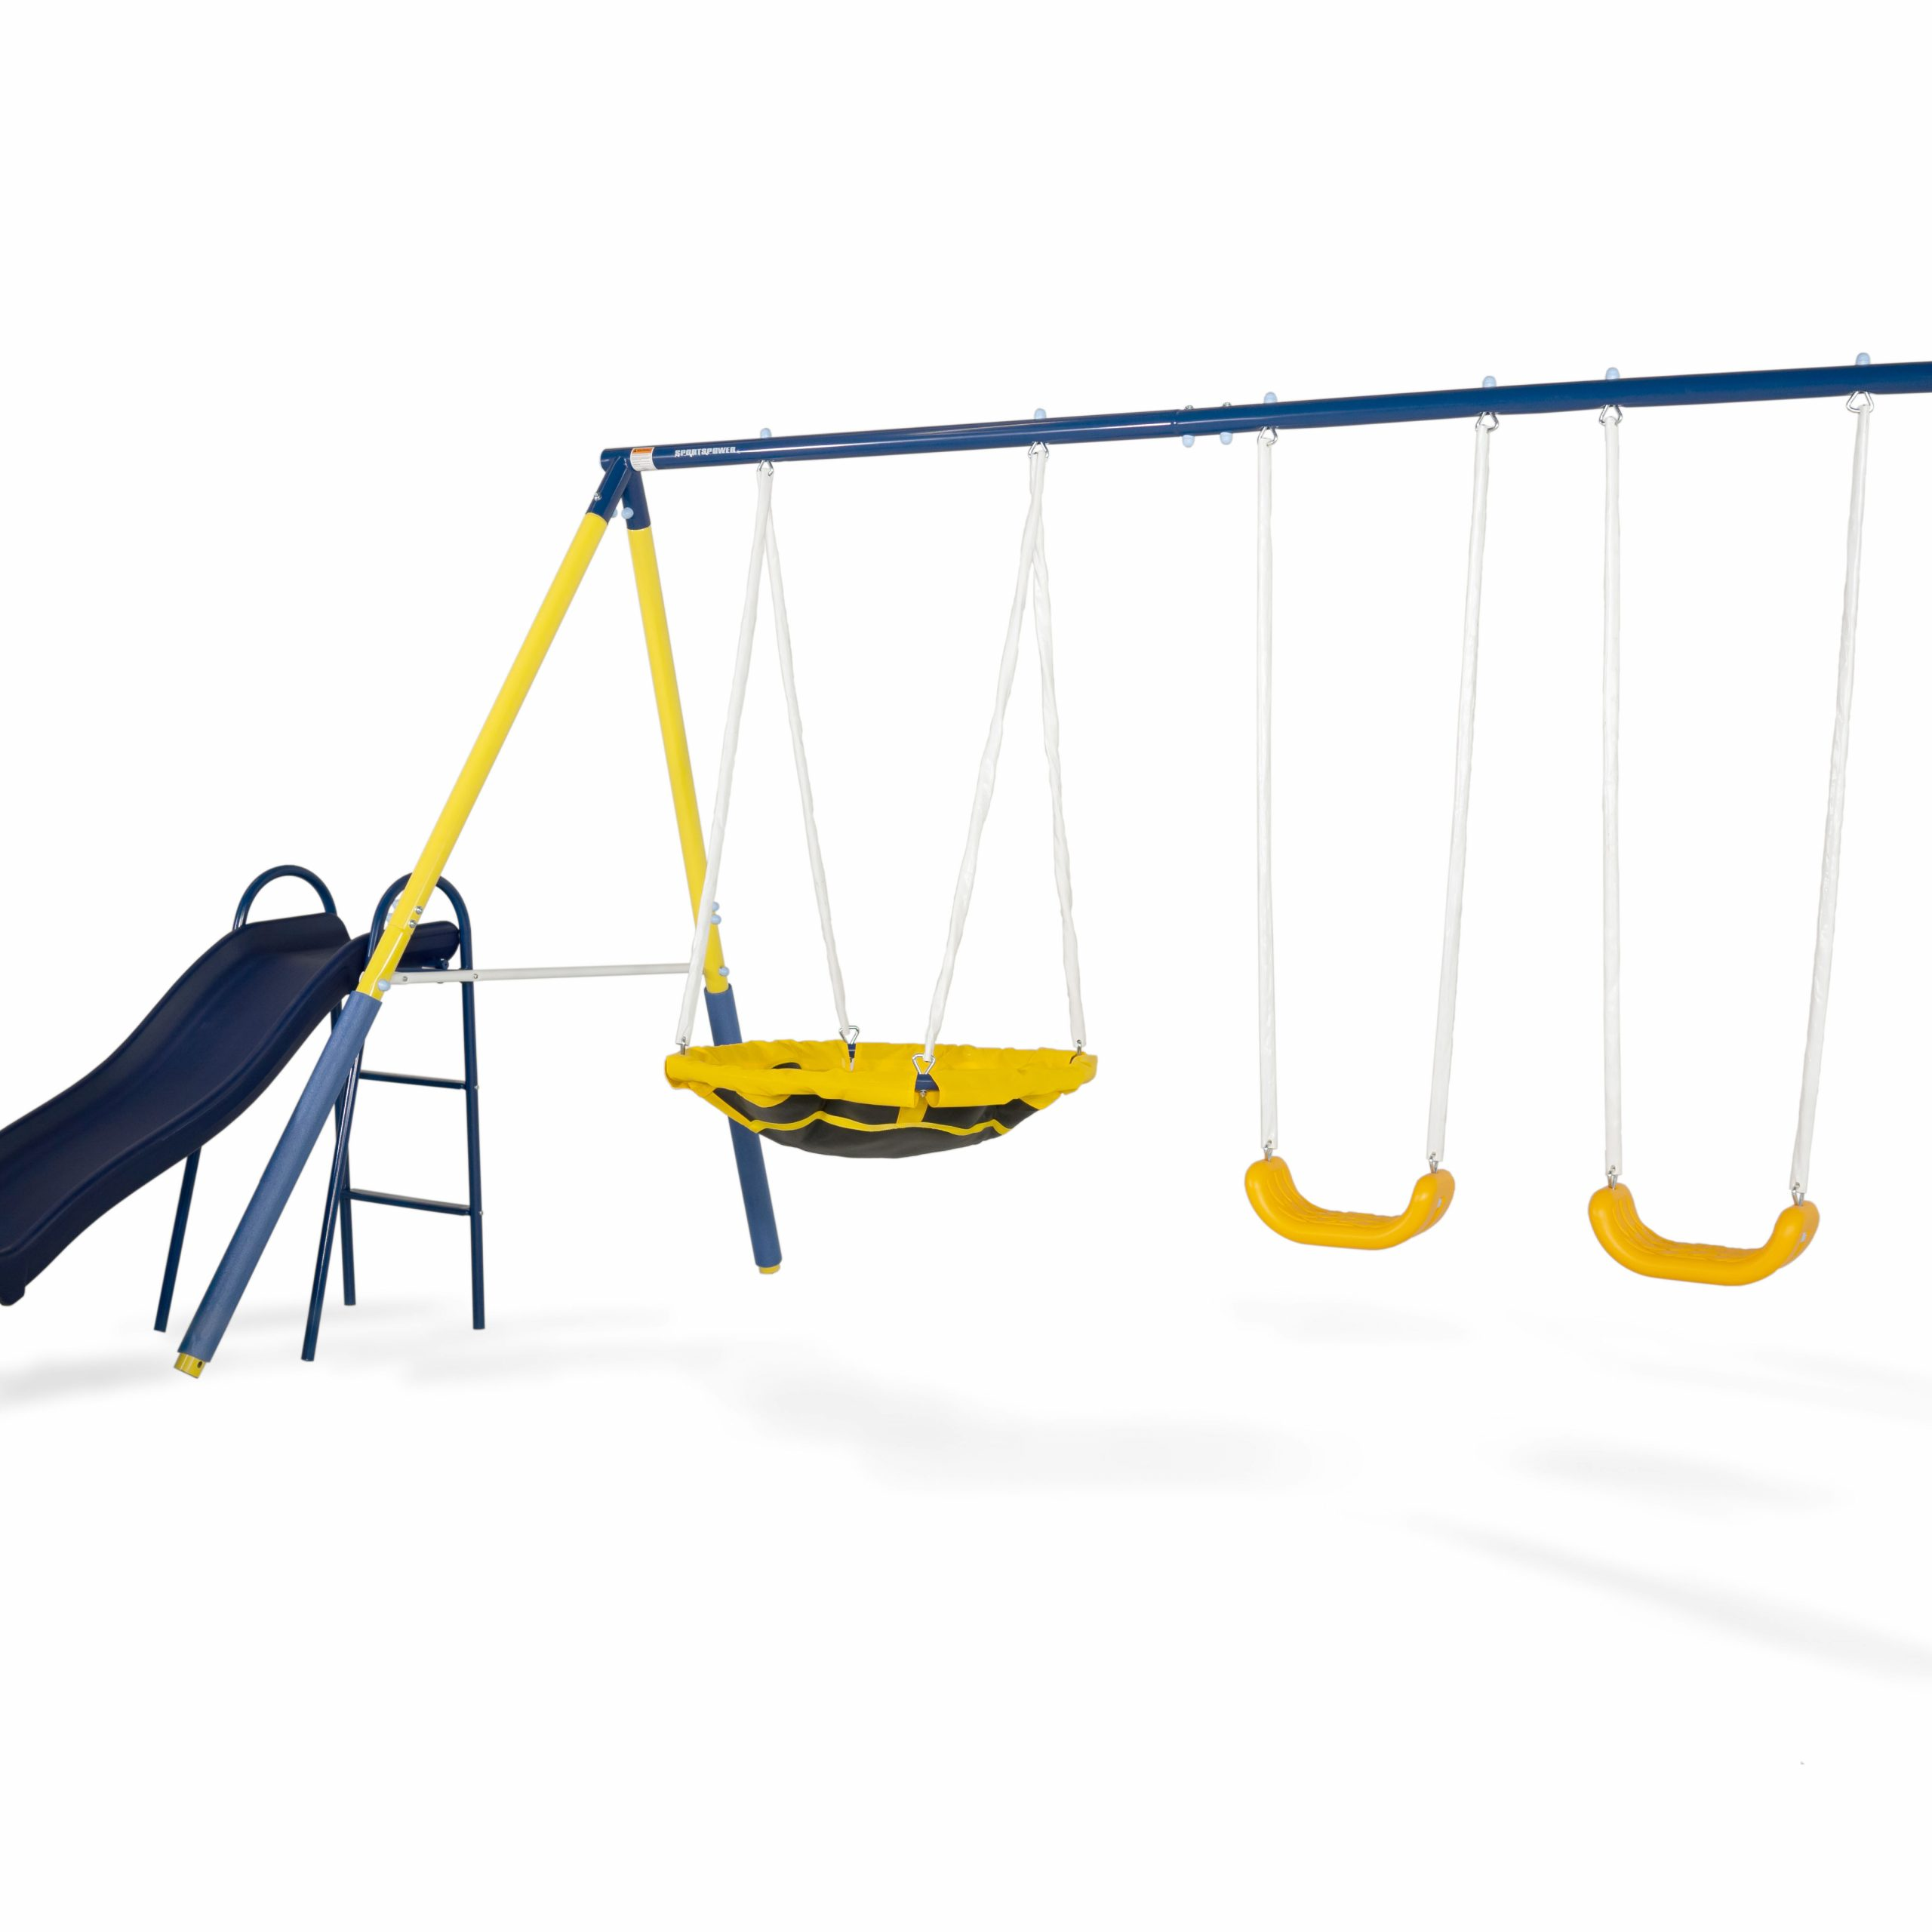 Sportspower Super Saucer Metal Swing Set With 2 Swings For Dual Rider Glider Swings With Soft Touch Rope (View 11 of 25)